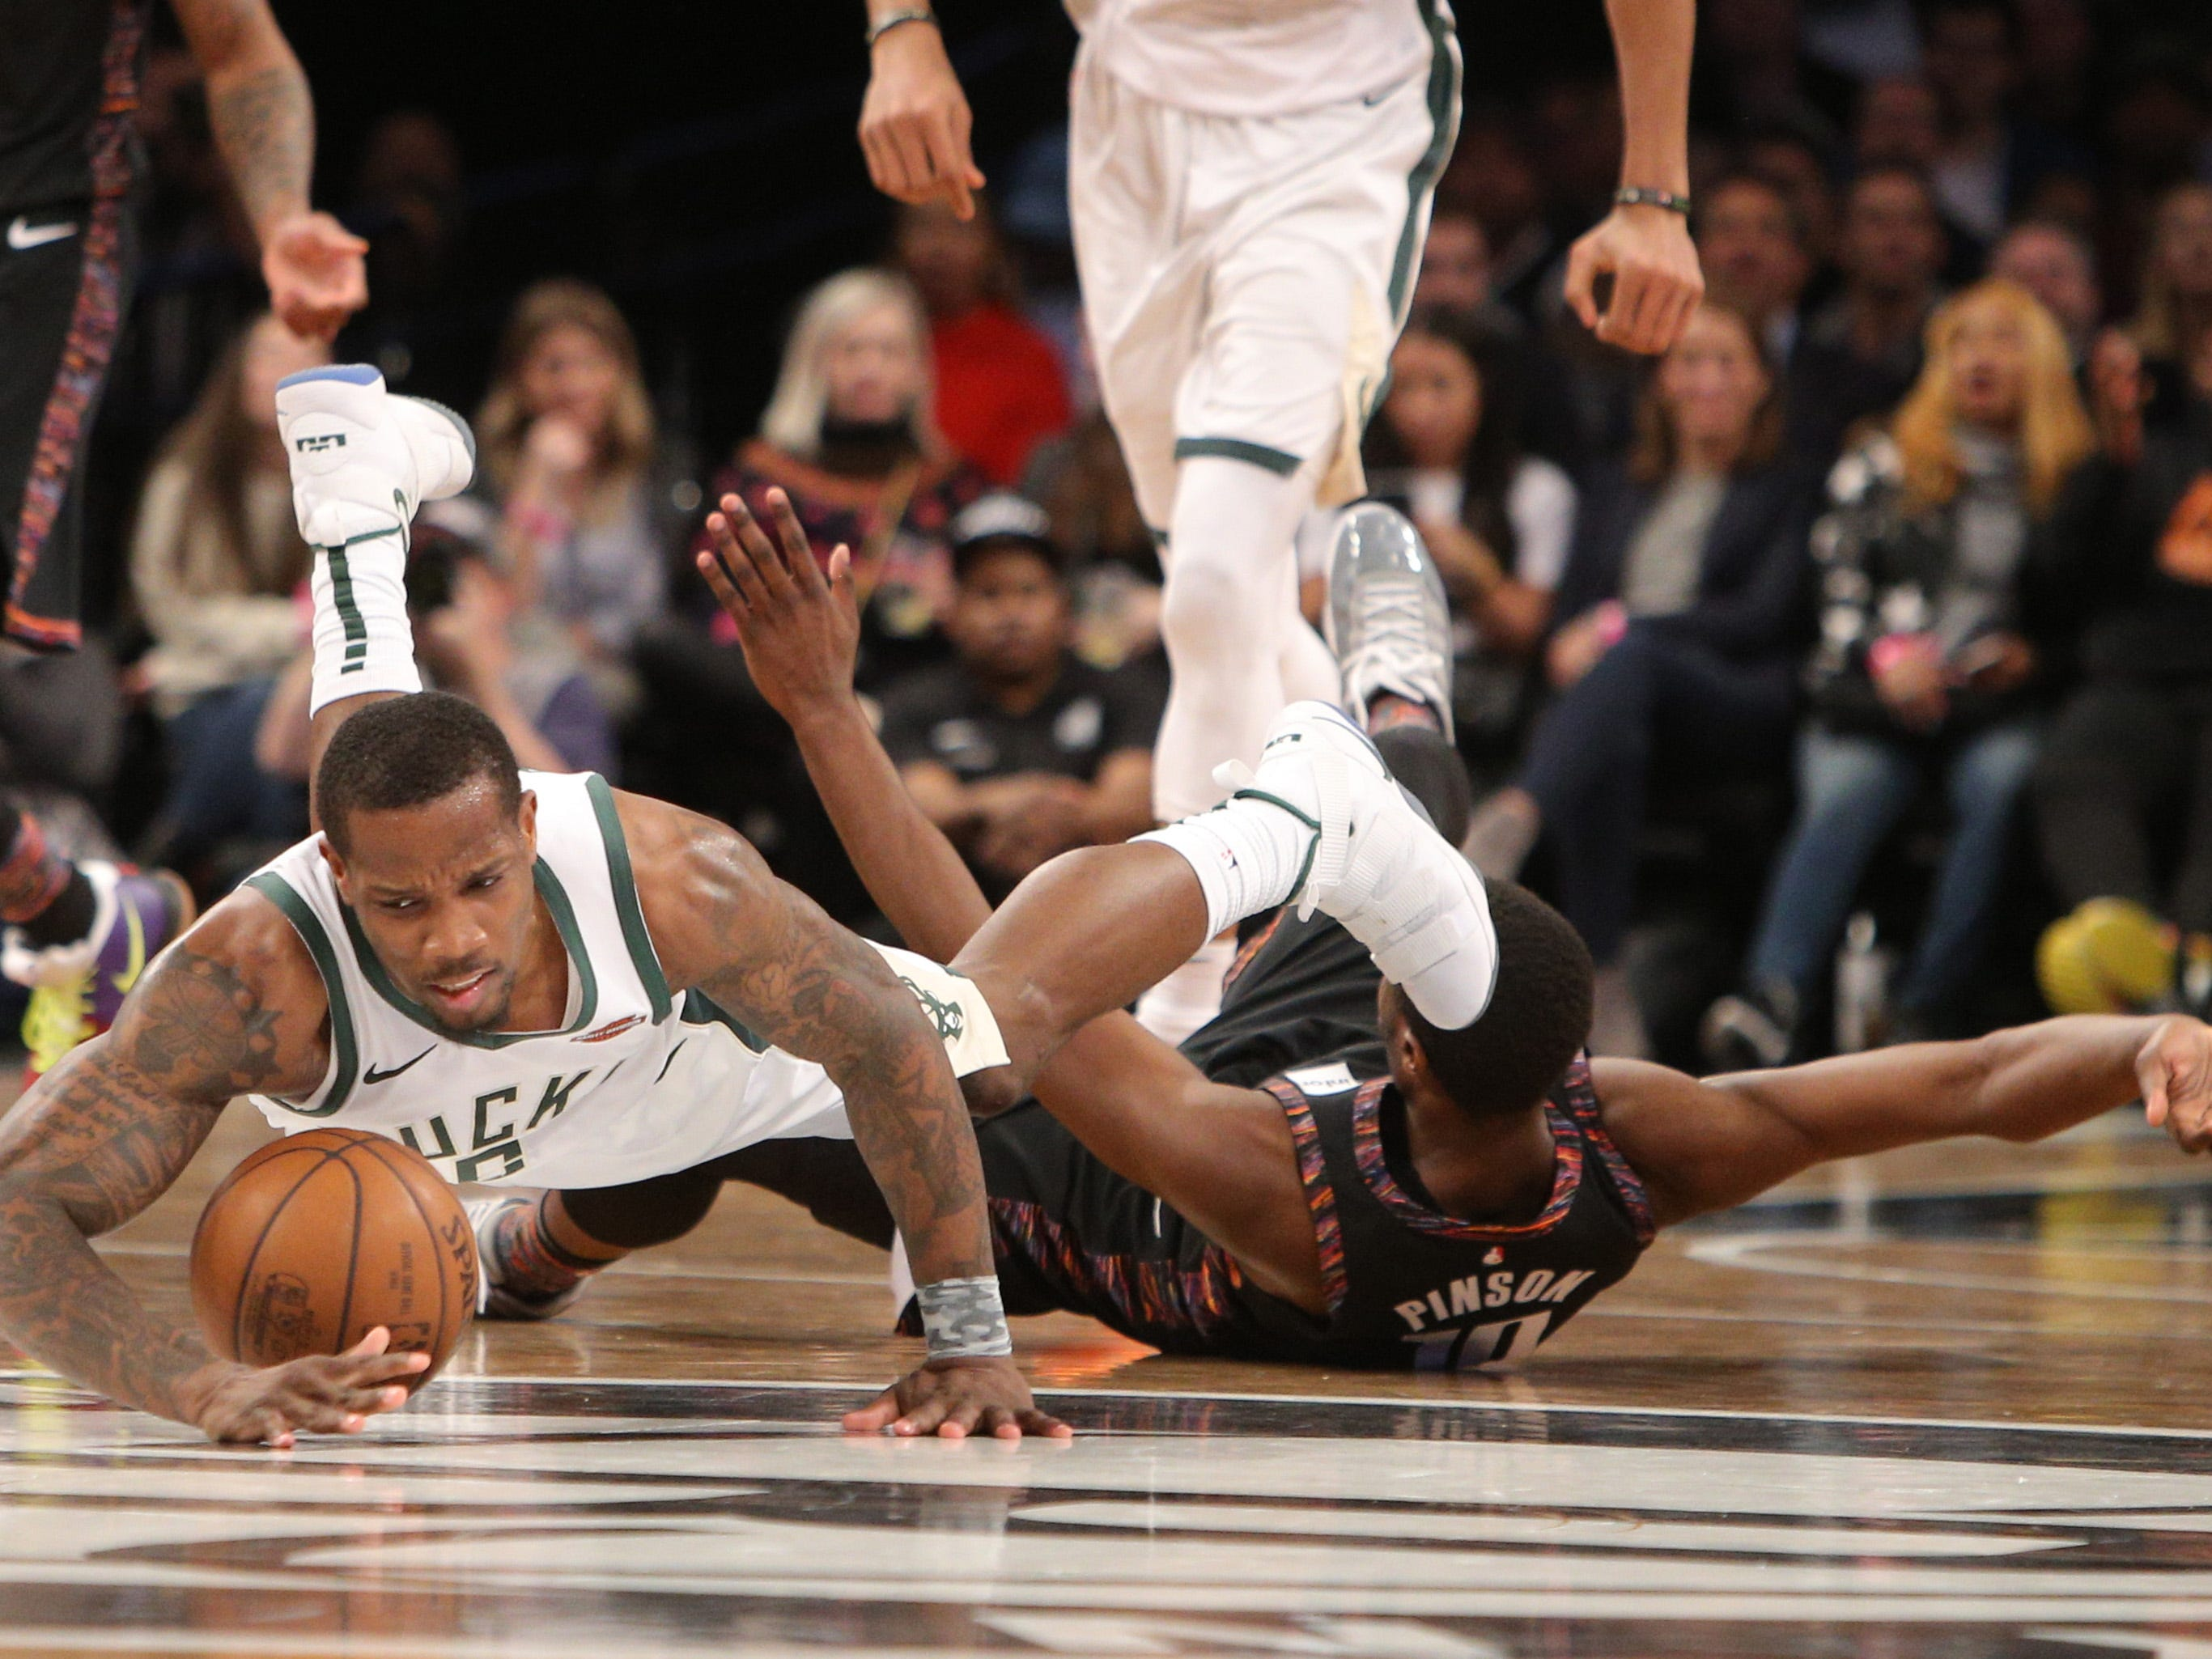 Bucks guard Eric Bledsoe is fouled after getting to a loose ball a click quicker than Nets guard Theo Pinson during the fourth quarter Monday night.